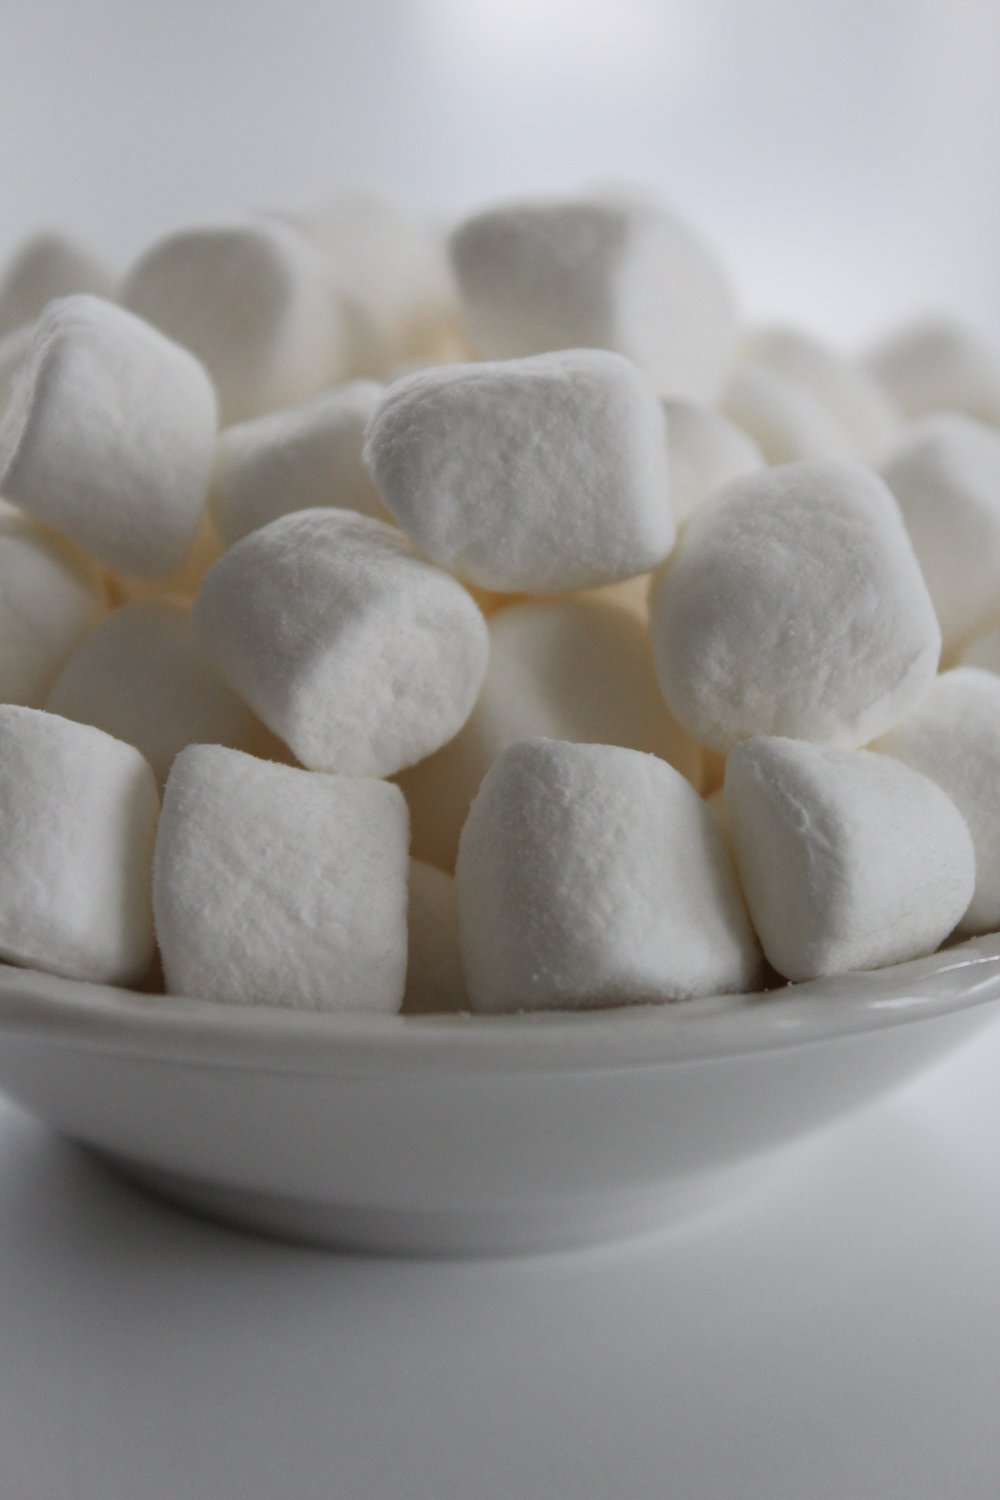 Unlike these marshmallows, there's no fluff when it comes to striking an emotional nerve in customers' brains. Without enough emotion, they won't notice, like or consider buying from you.     *(The Long & The Short Of It', Institute For Practitioners in Advertising, 2013-2018, looking into over 700 brands, in 80 industries over 30 years. We like doing our research 😉)